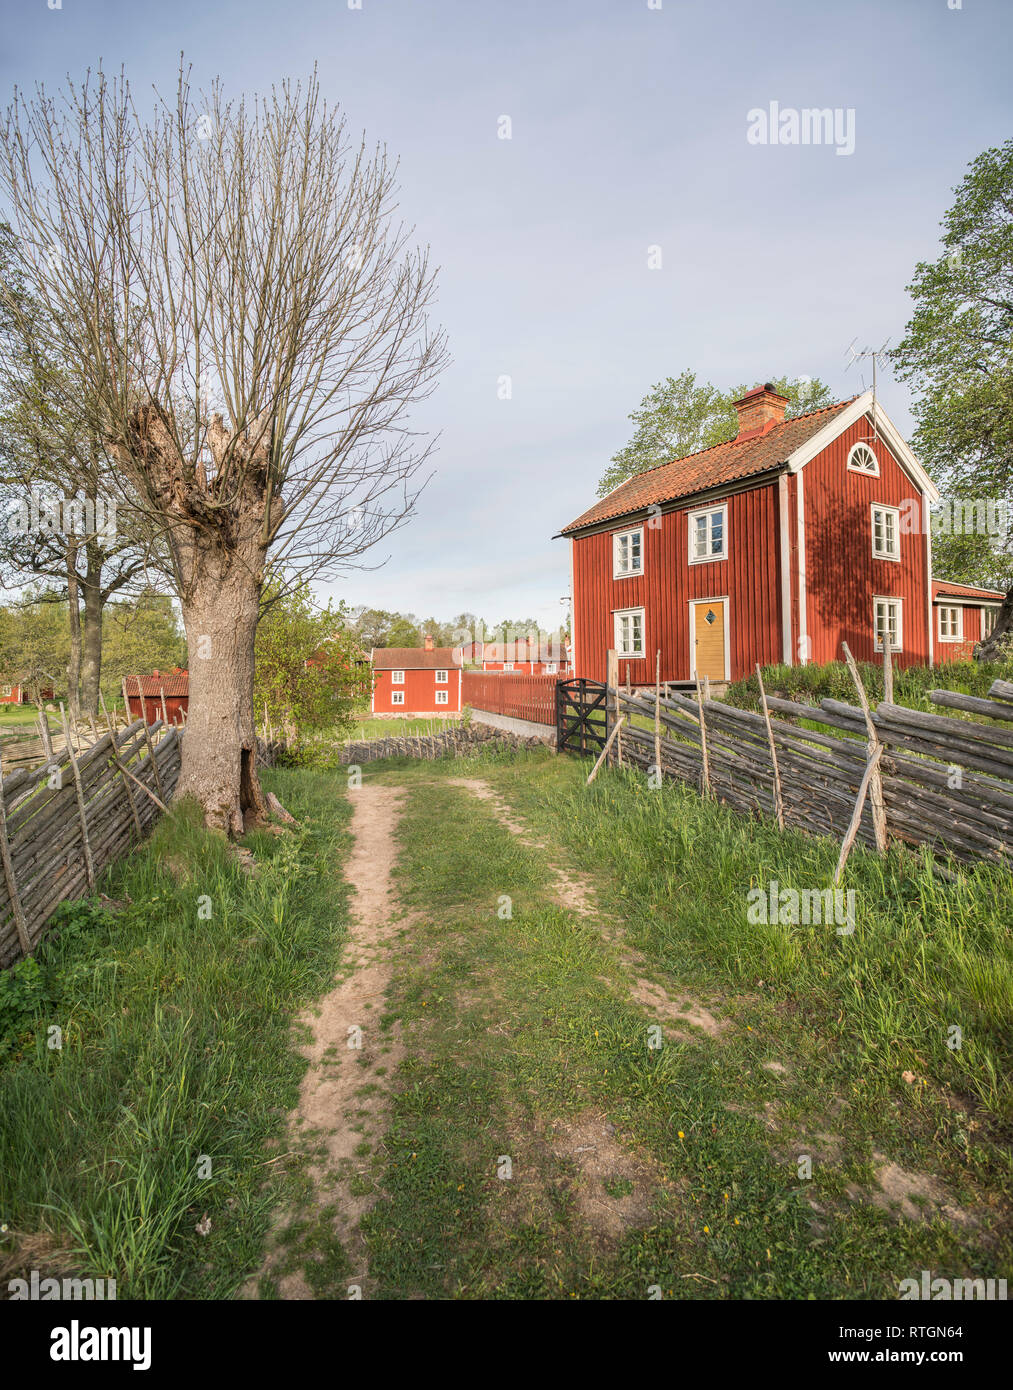 Old farm house and traditional roundpole fence in a rural landscape at the village Stensjo by in Smaland, Sweden, Scandinavia - Stock Image